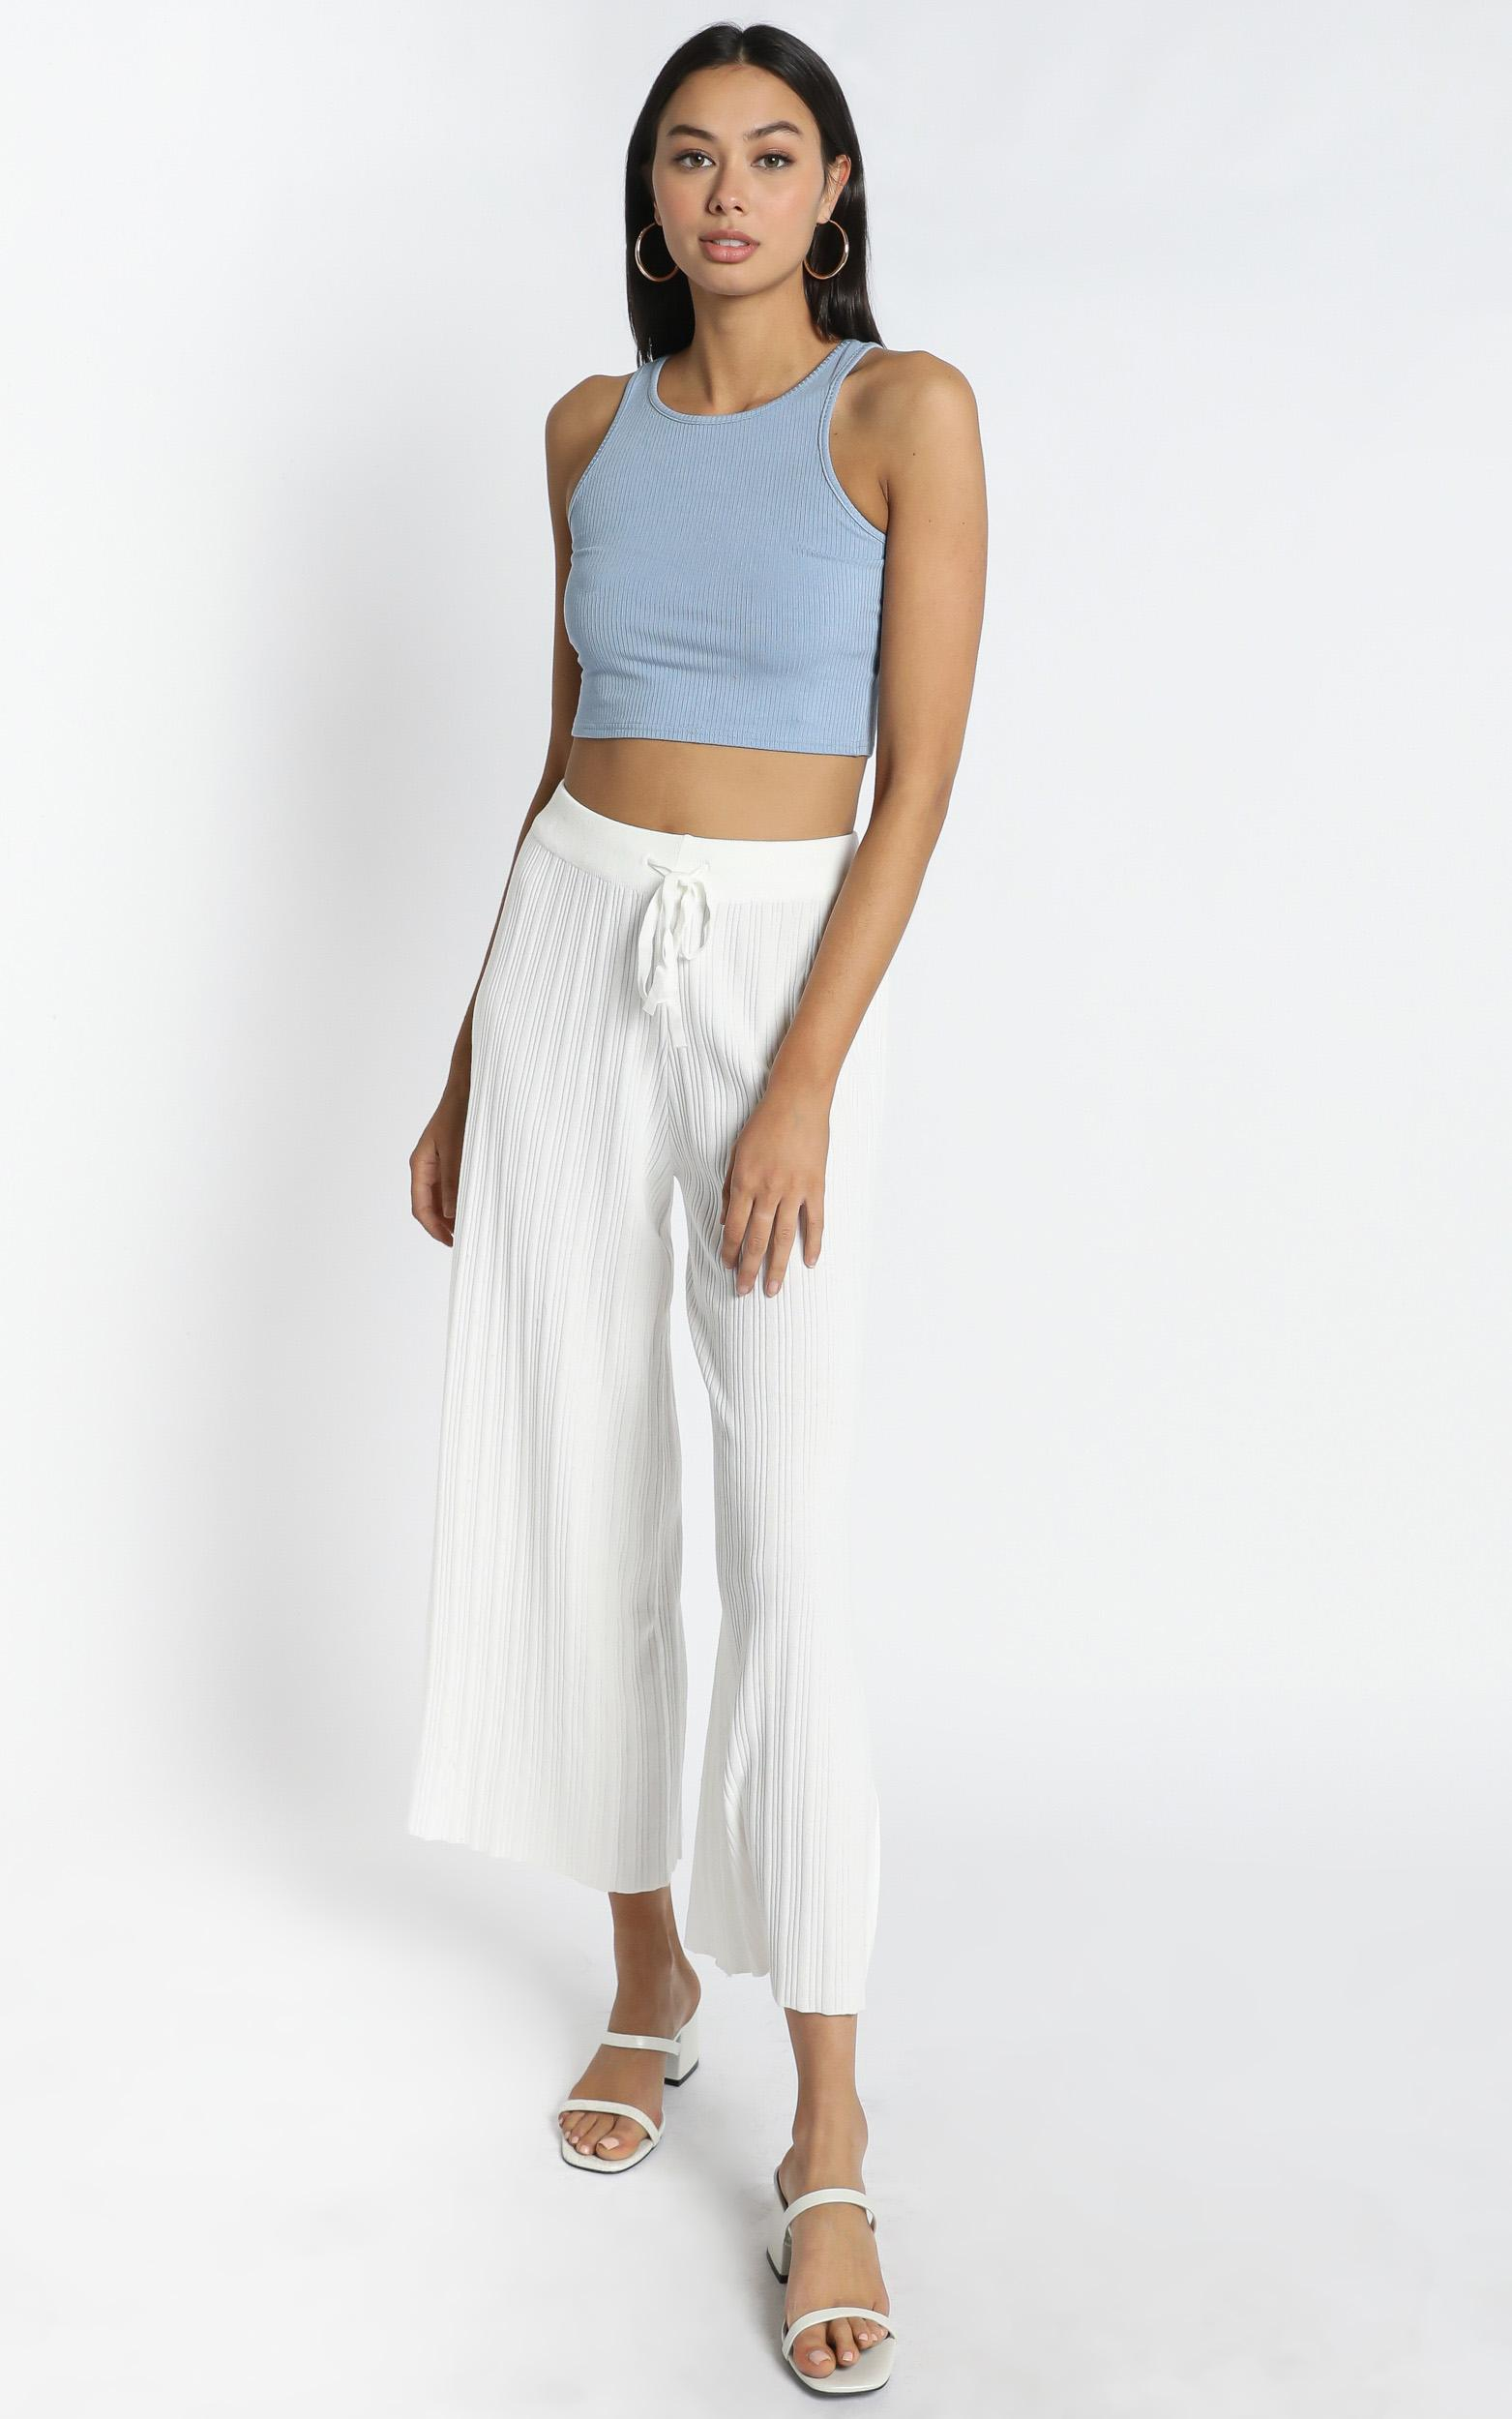 Blair Ribbed Pants in White - L, White, hi-res image number null